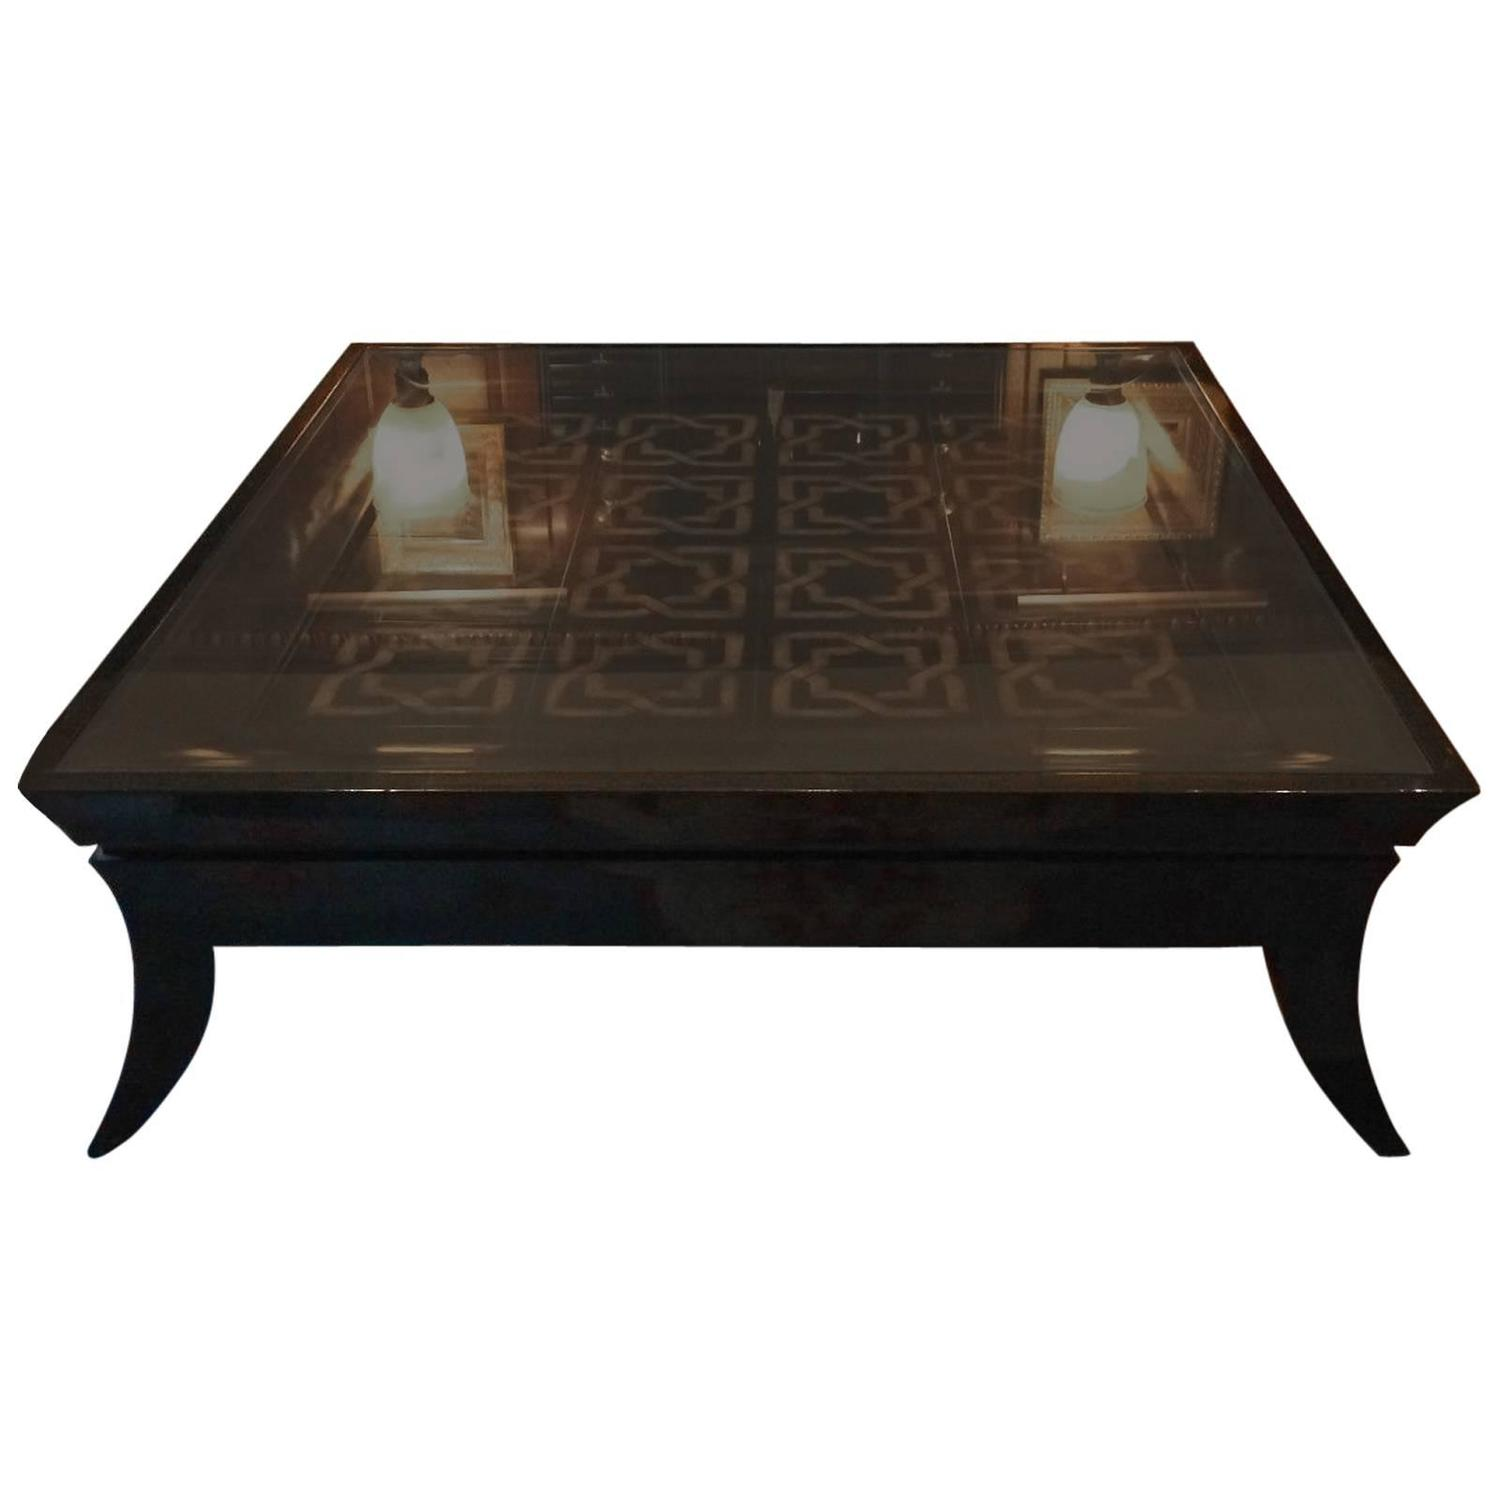 large coffee table glass topped tiled modern at 1stdibs ForLarge Glass Coffee Table